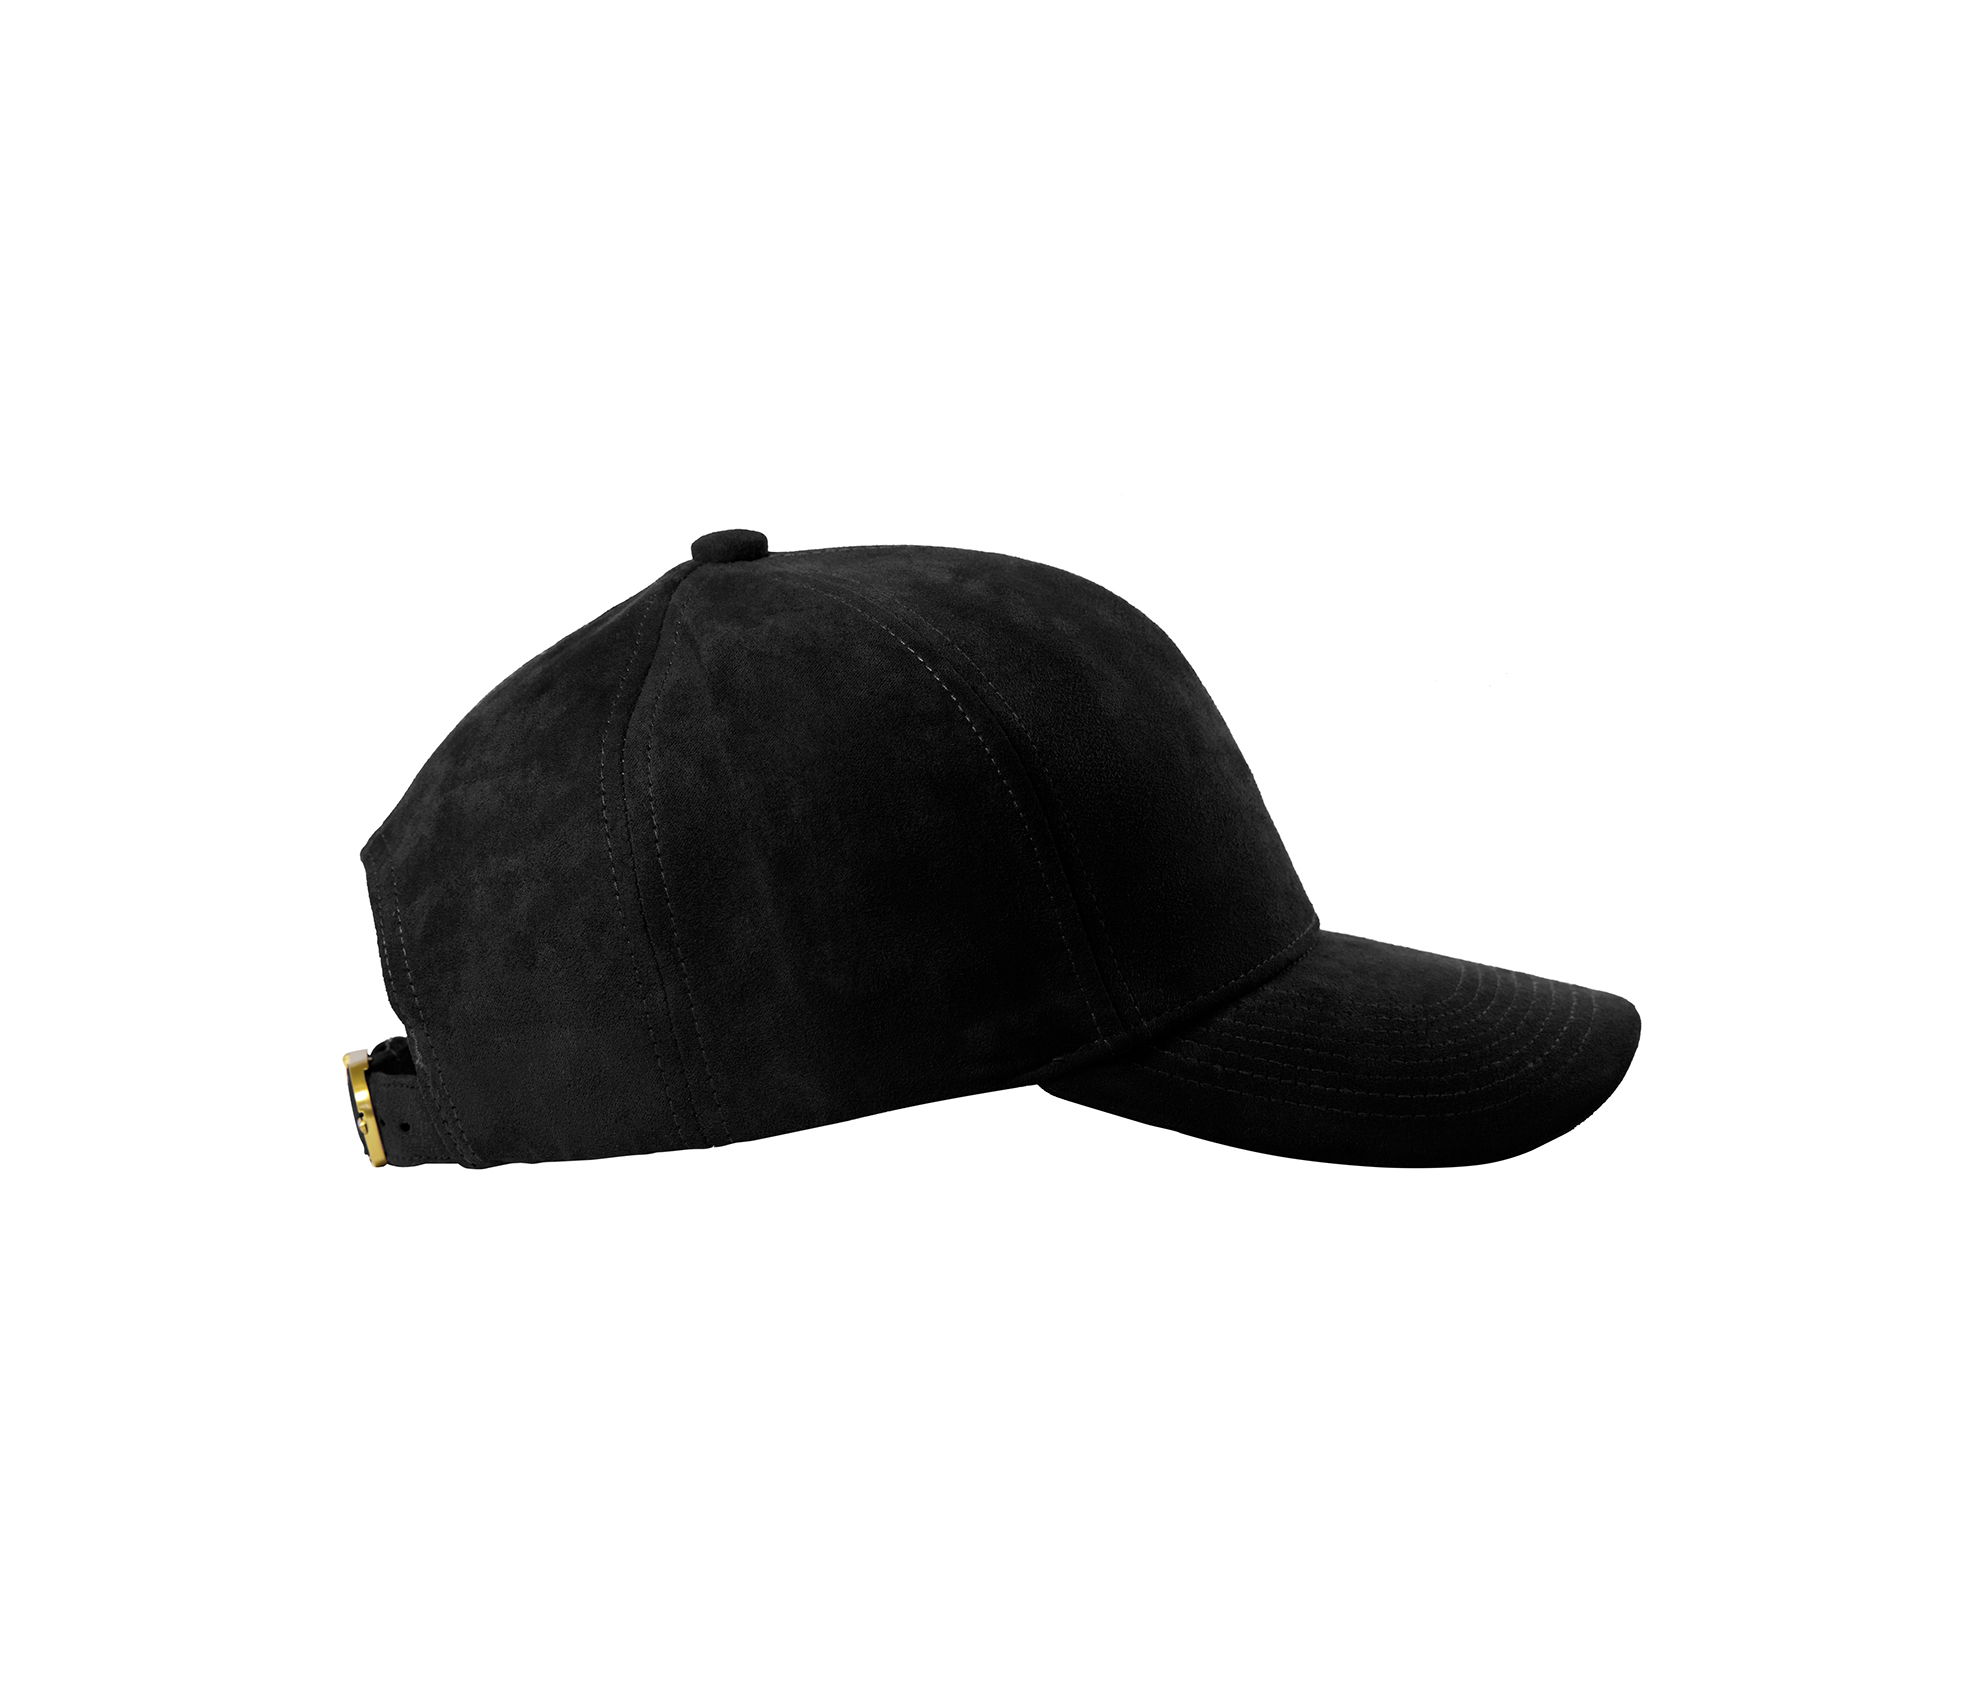 BASEBALL CAP BLACK SUEDE GOLD SIDE